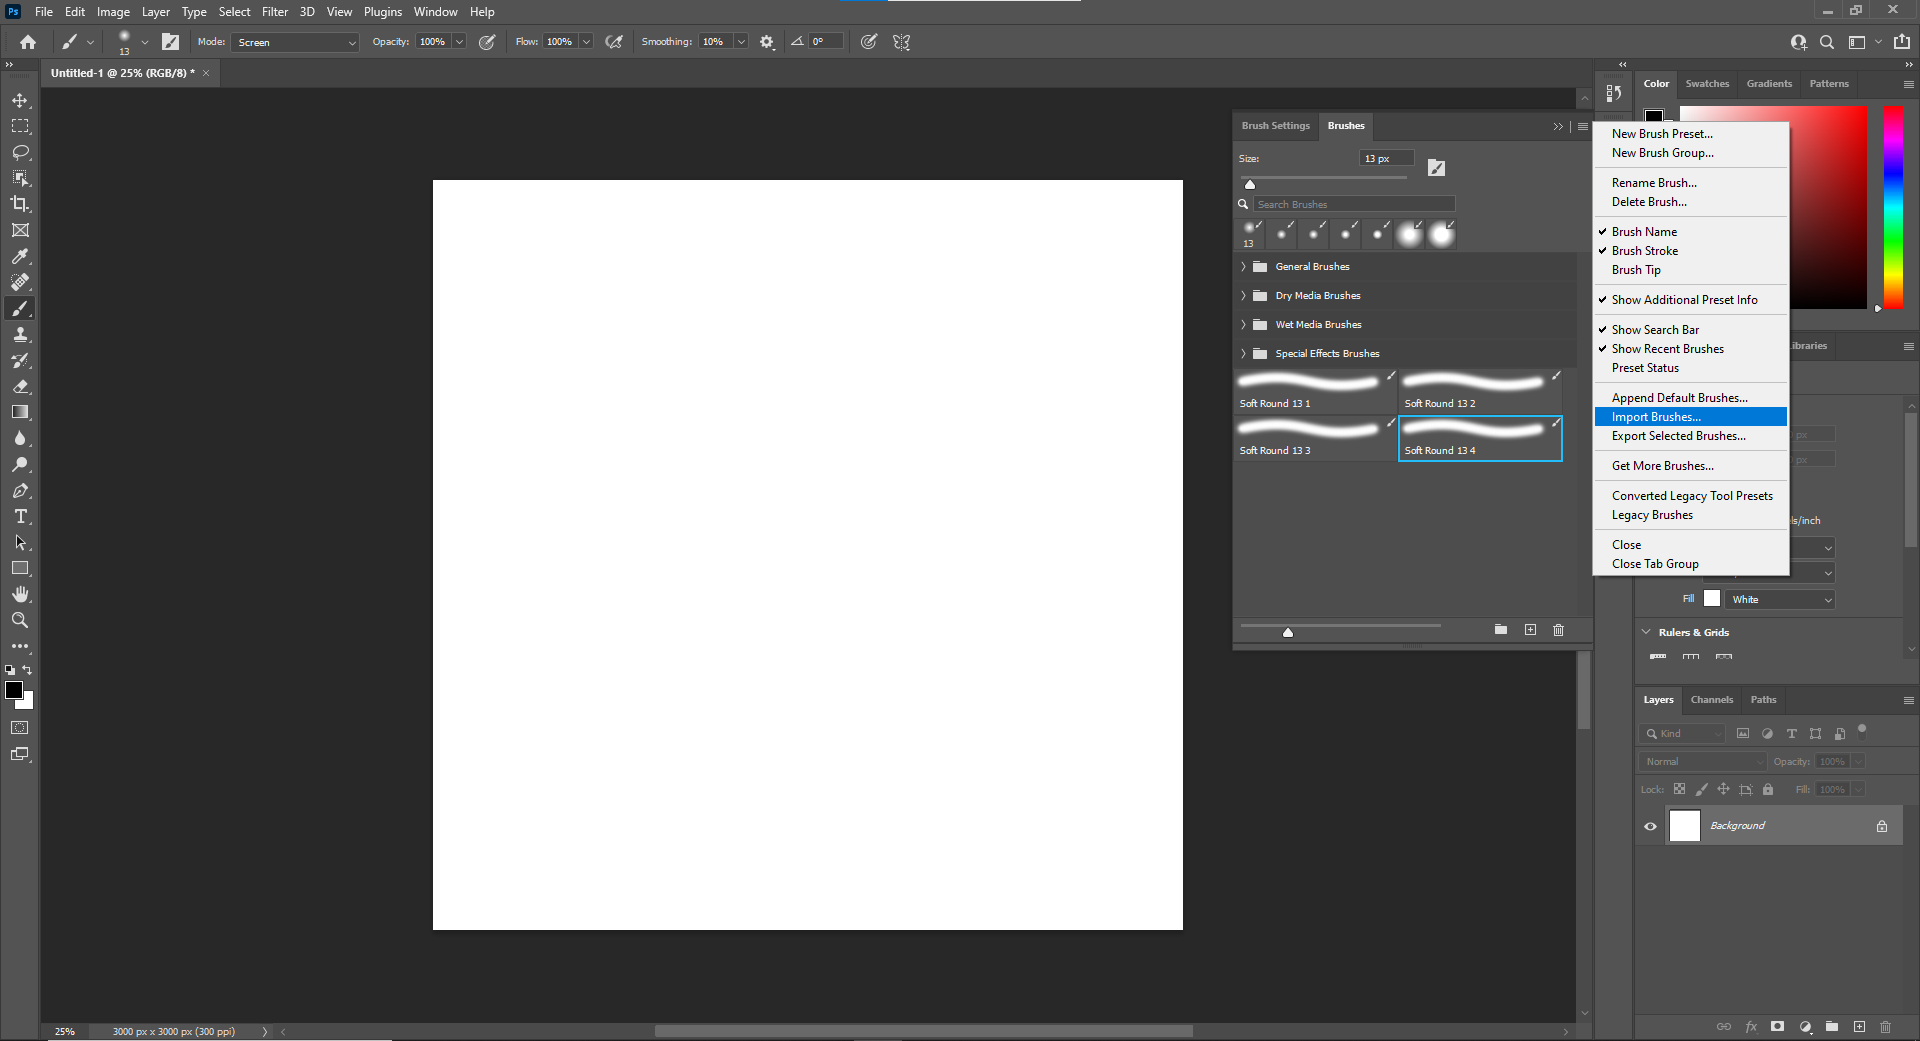 Click the menu on the top right corner, then click Import Brushes.